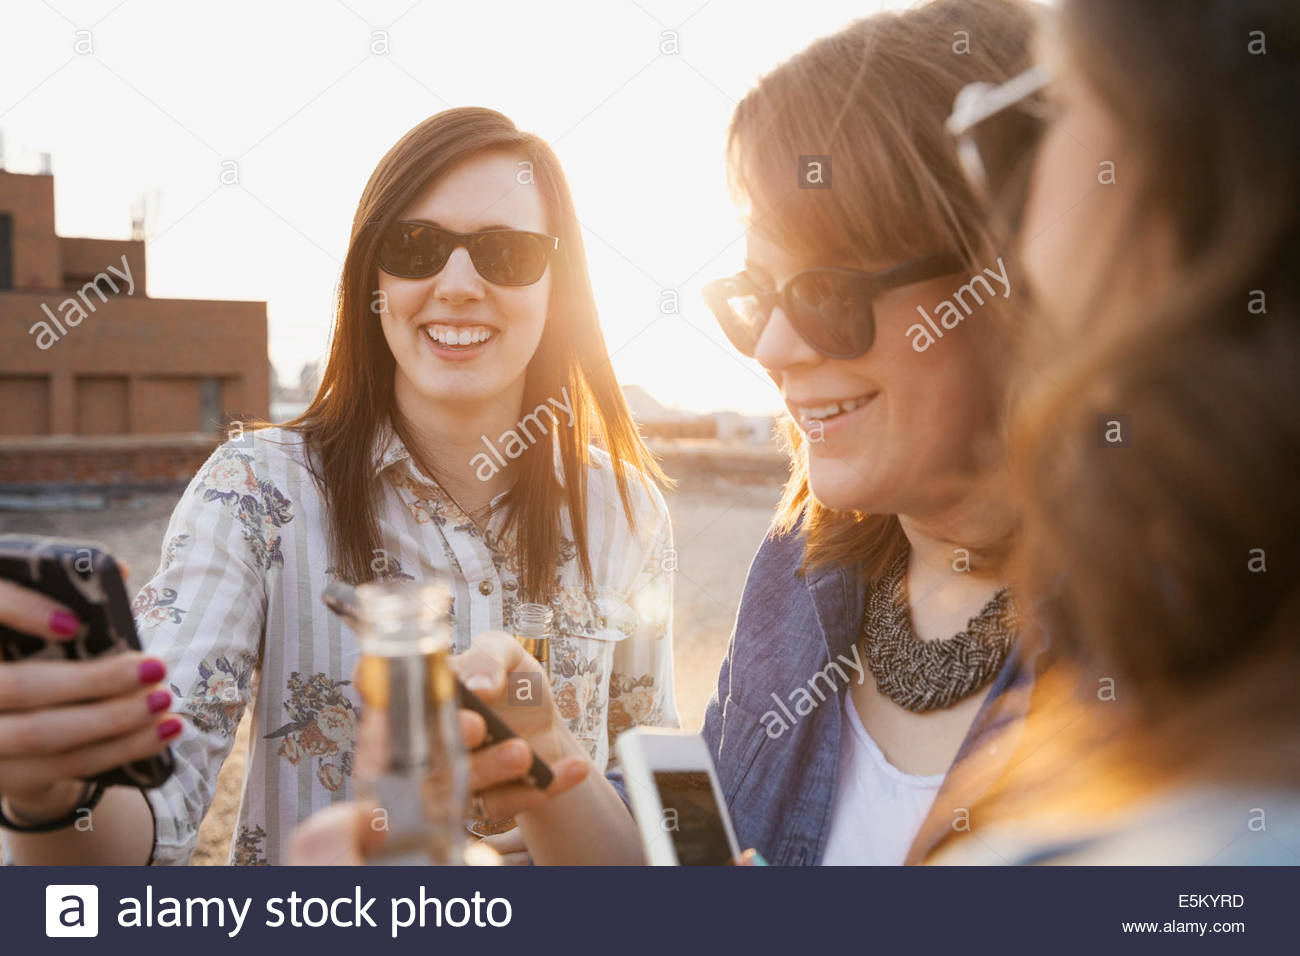 Friends drinking beer and text messaging on rooftop - Stock Image